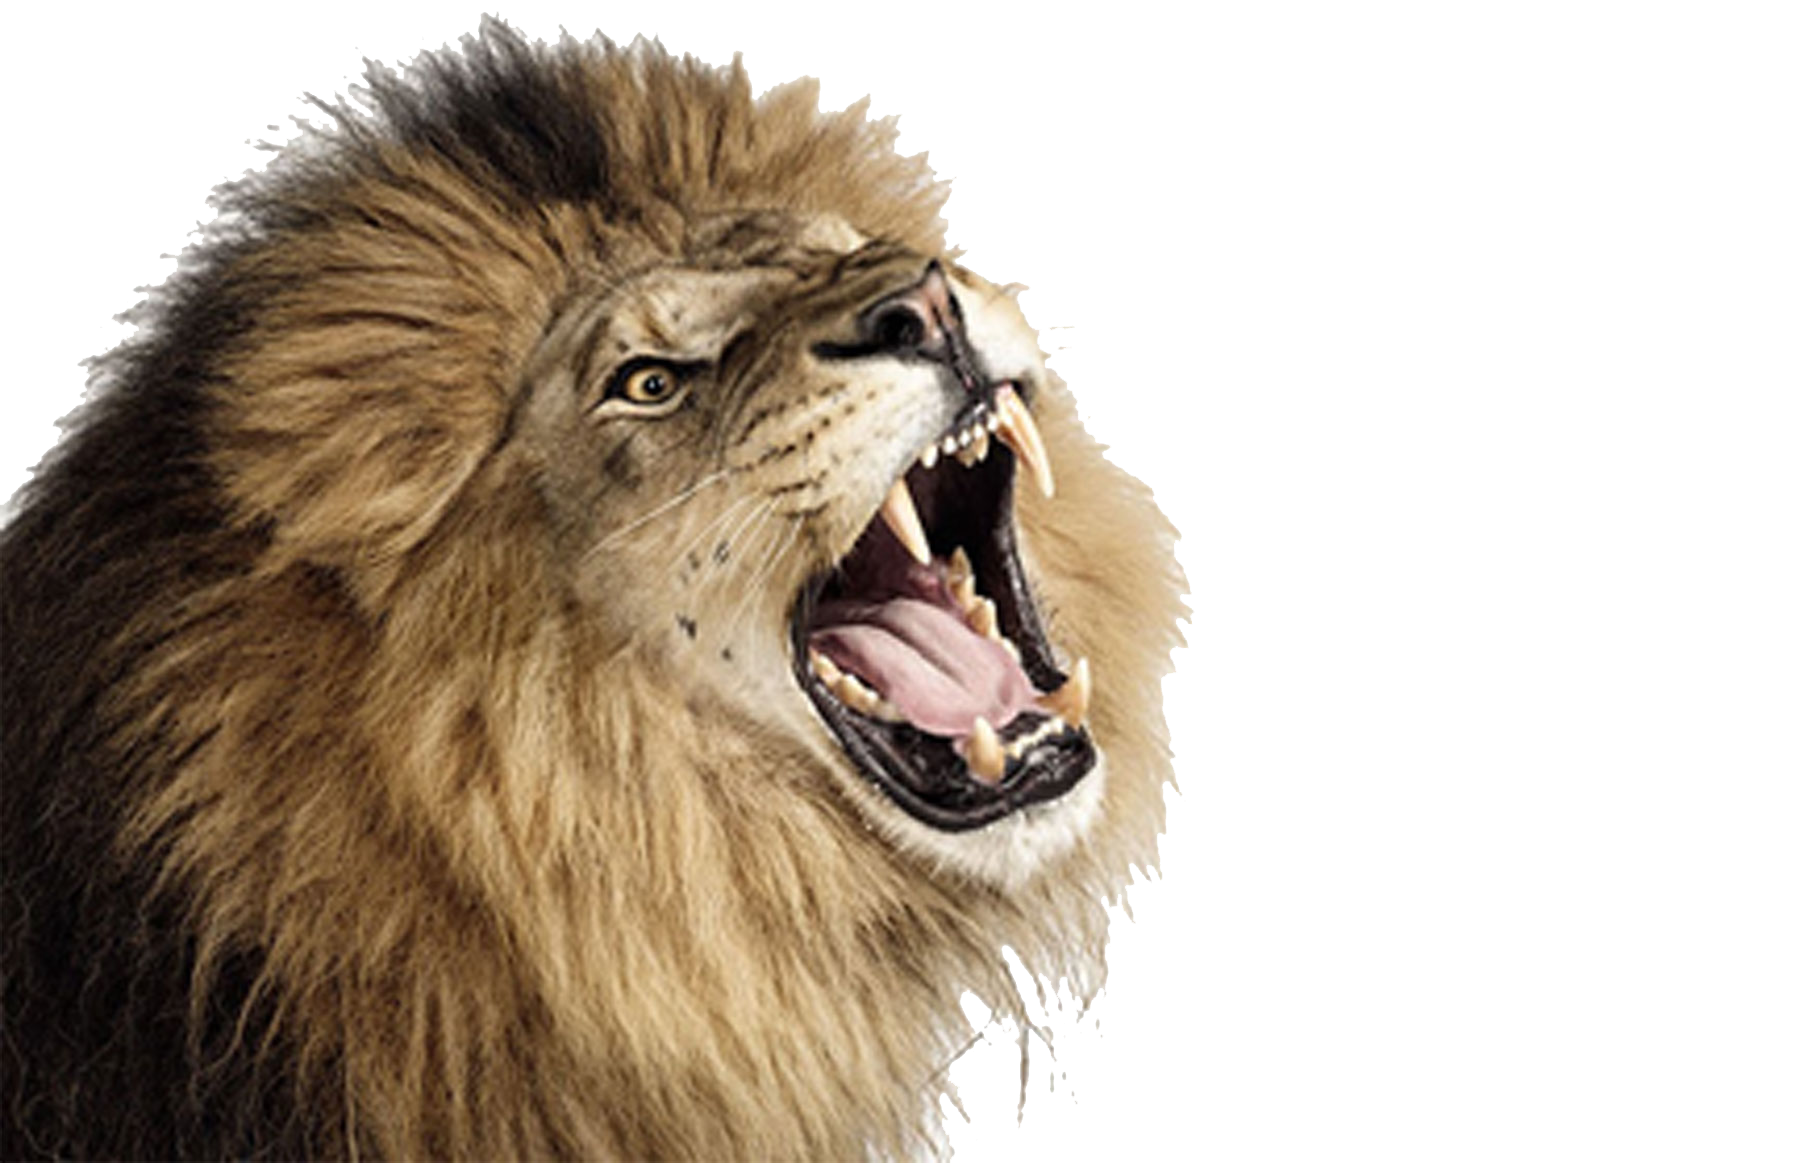 Roaring tiger png. Lion photos mart